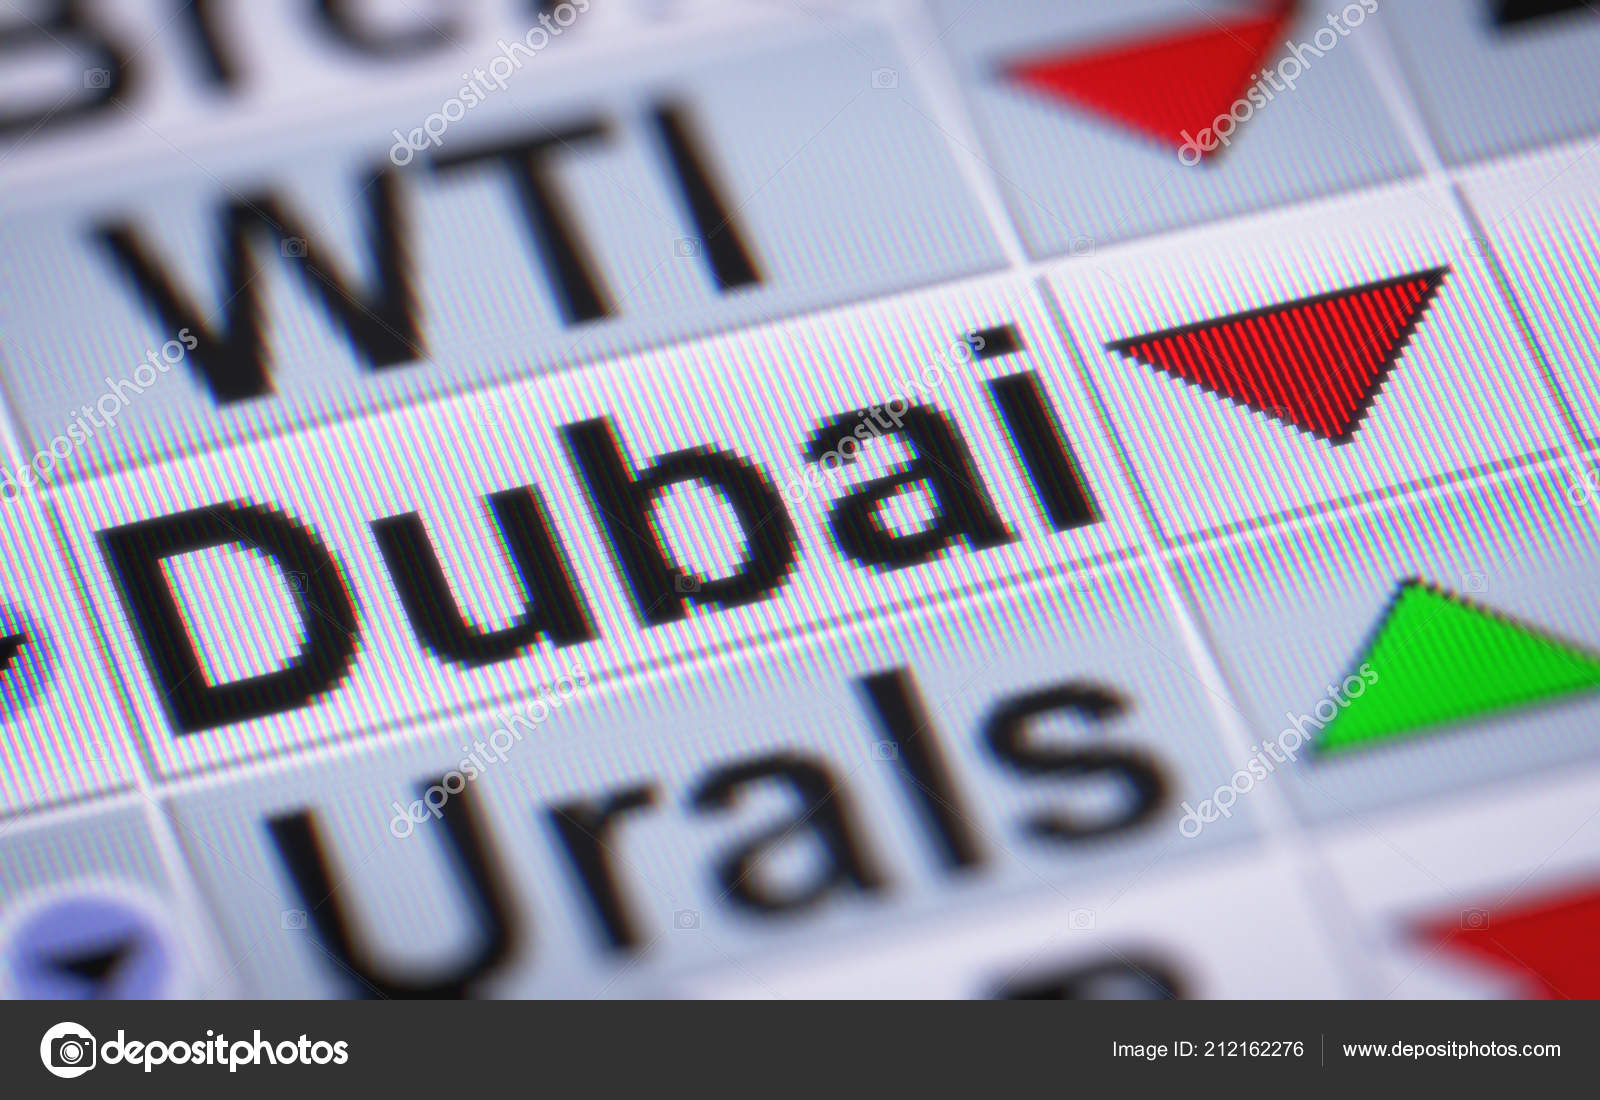 Dubai Crude Oil Illustration Stock Editorial Photo Pirenx 212162276